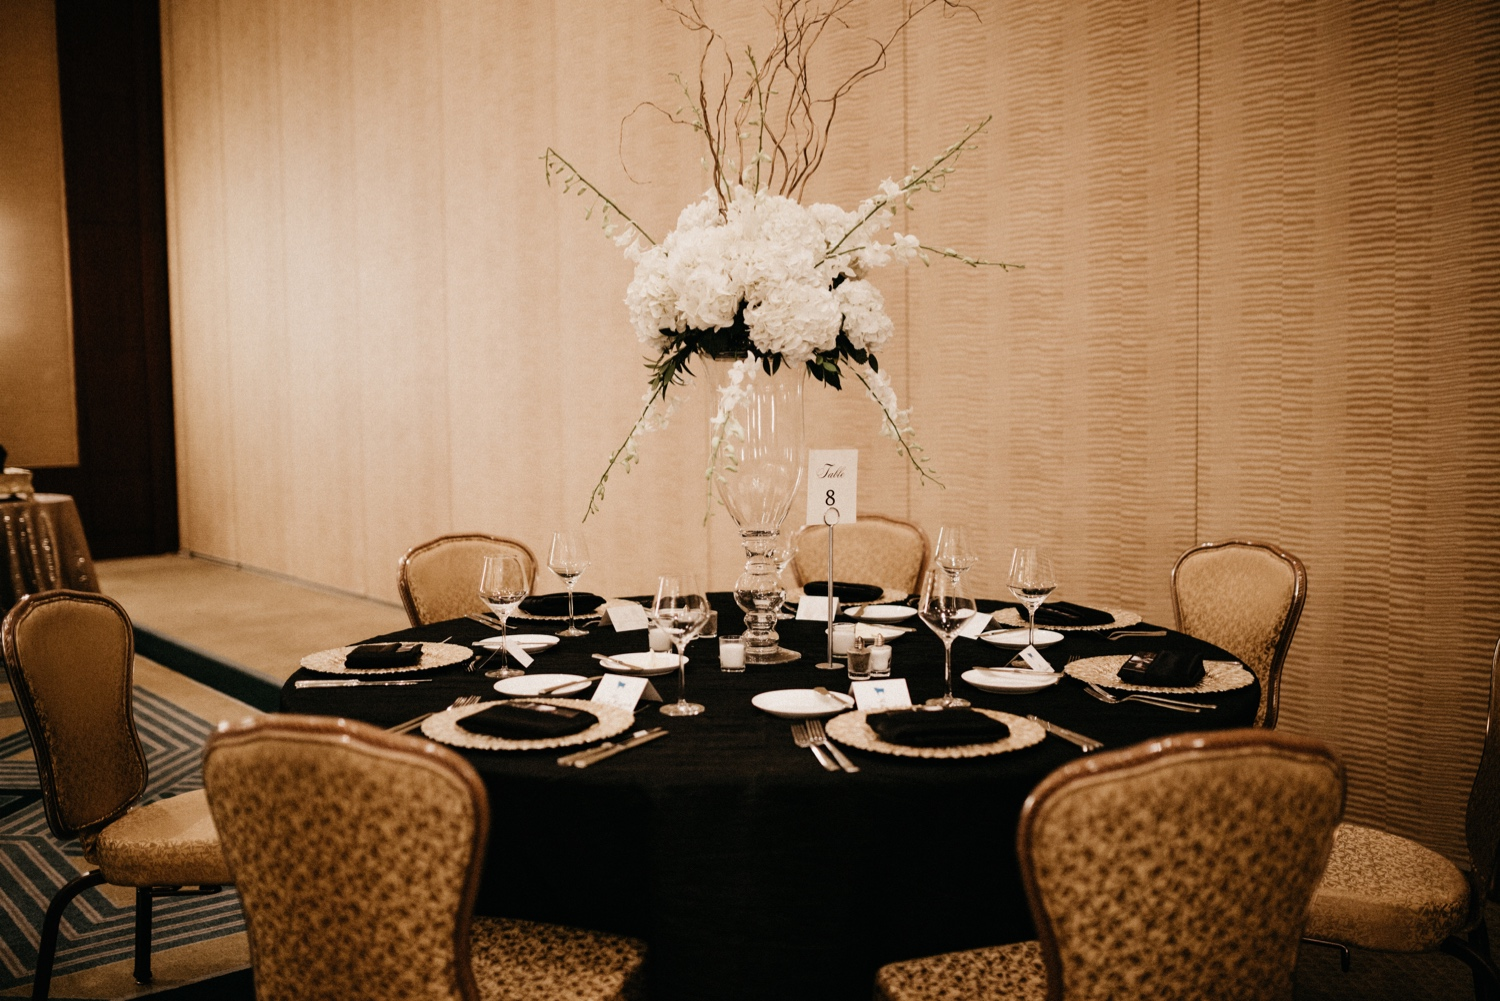 62_Ritz-carlton-wedding_charlotteNC_charlotteweddingphotographer.jpg